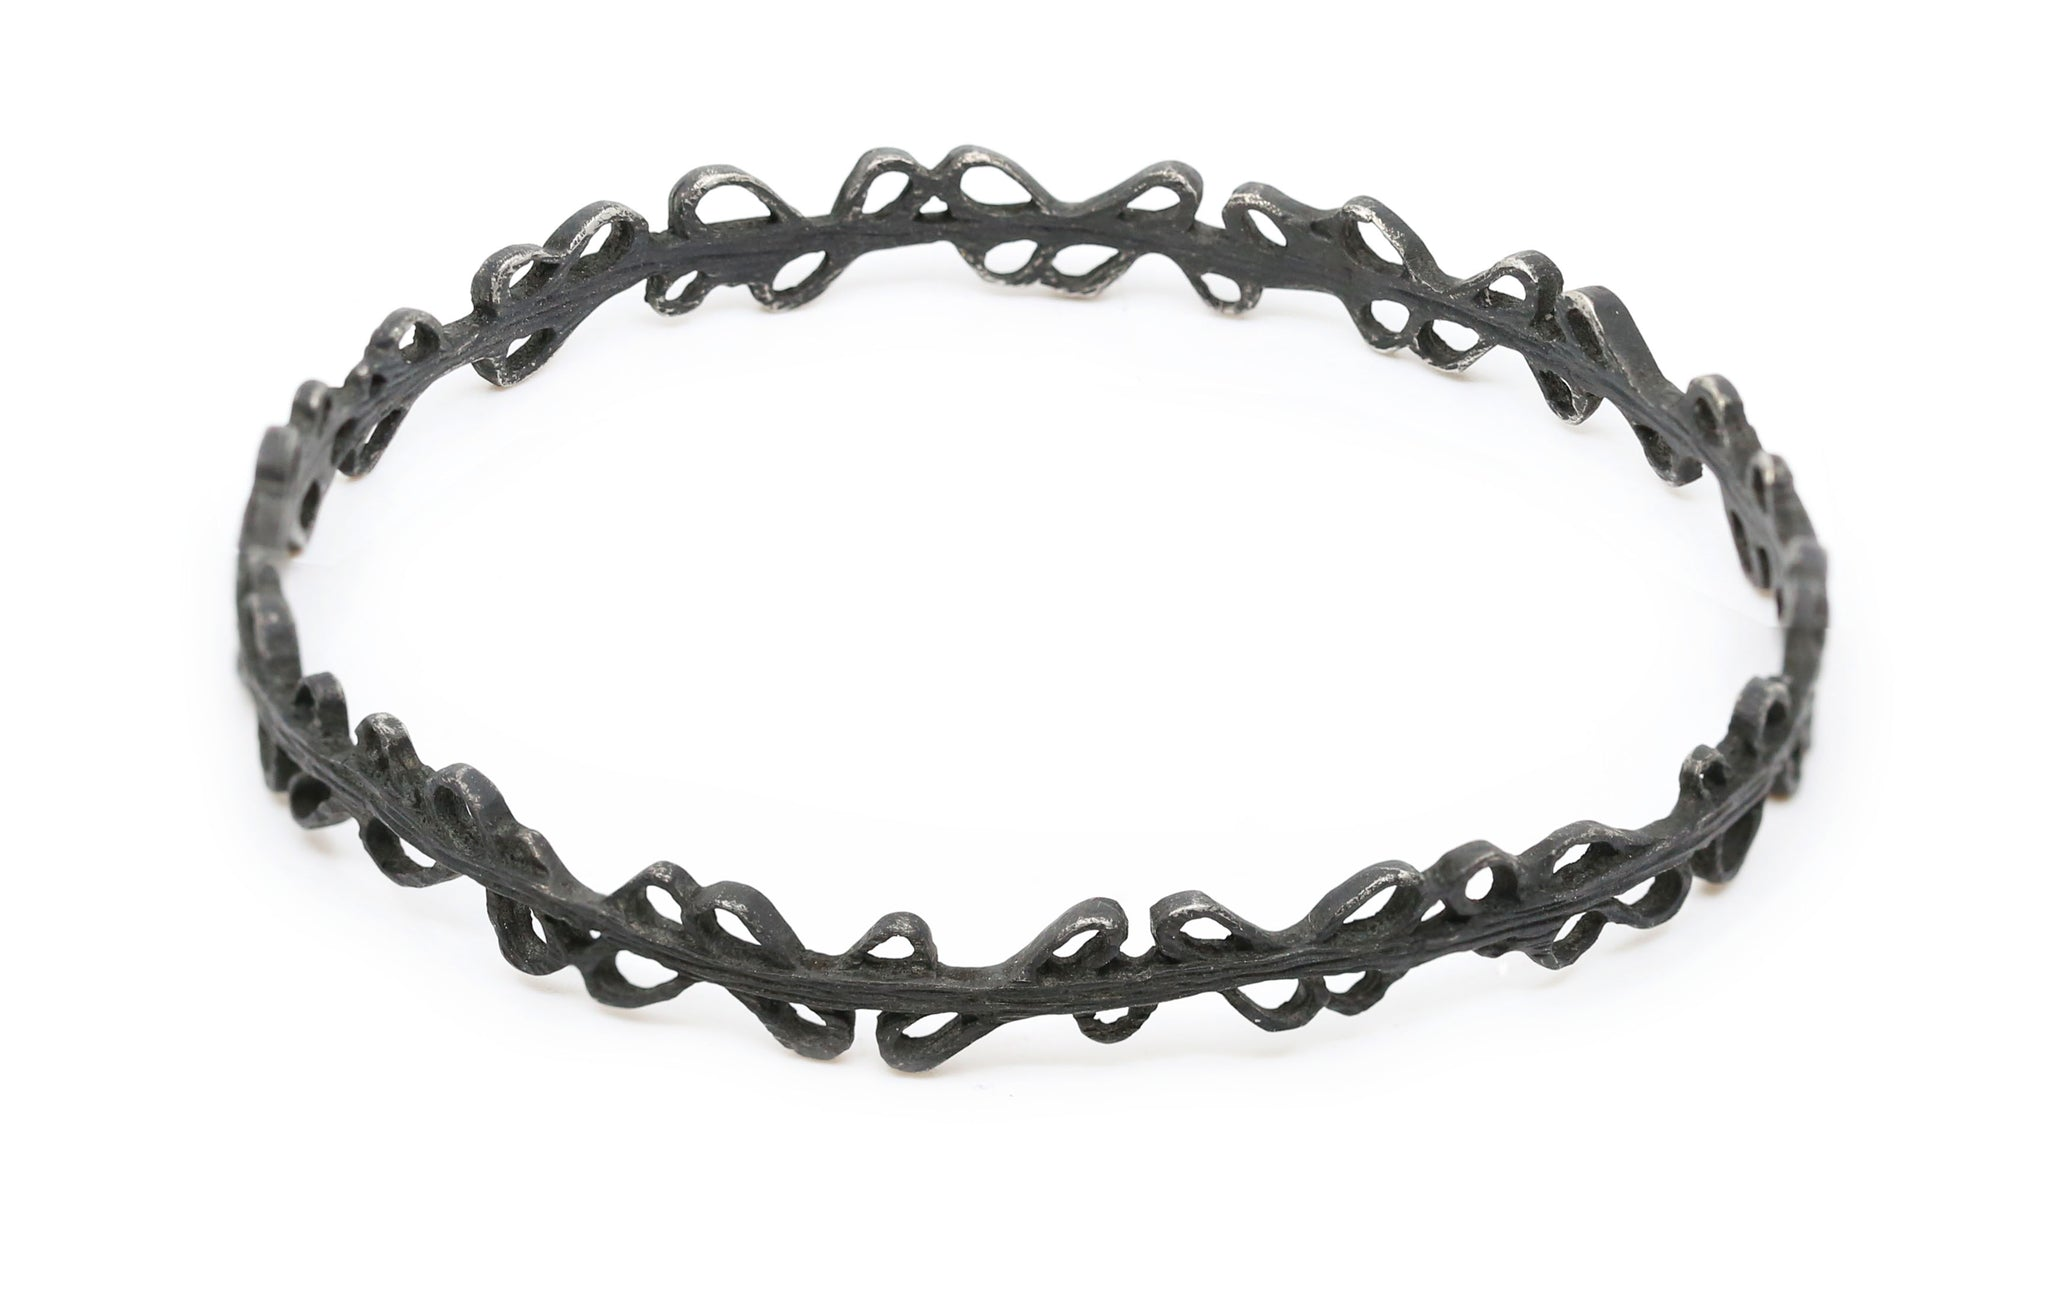 Black Cobalt Chrome Bracelet